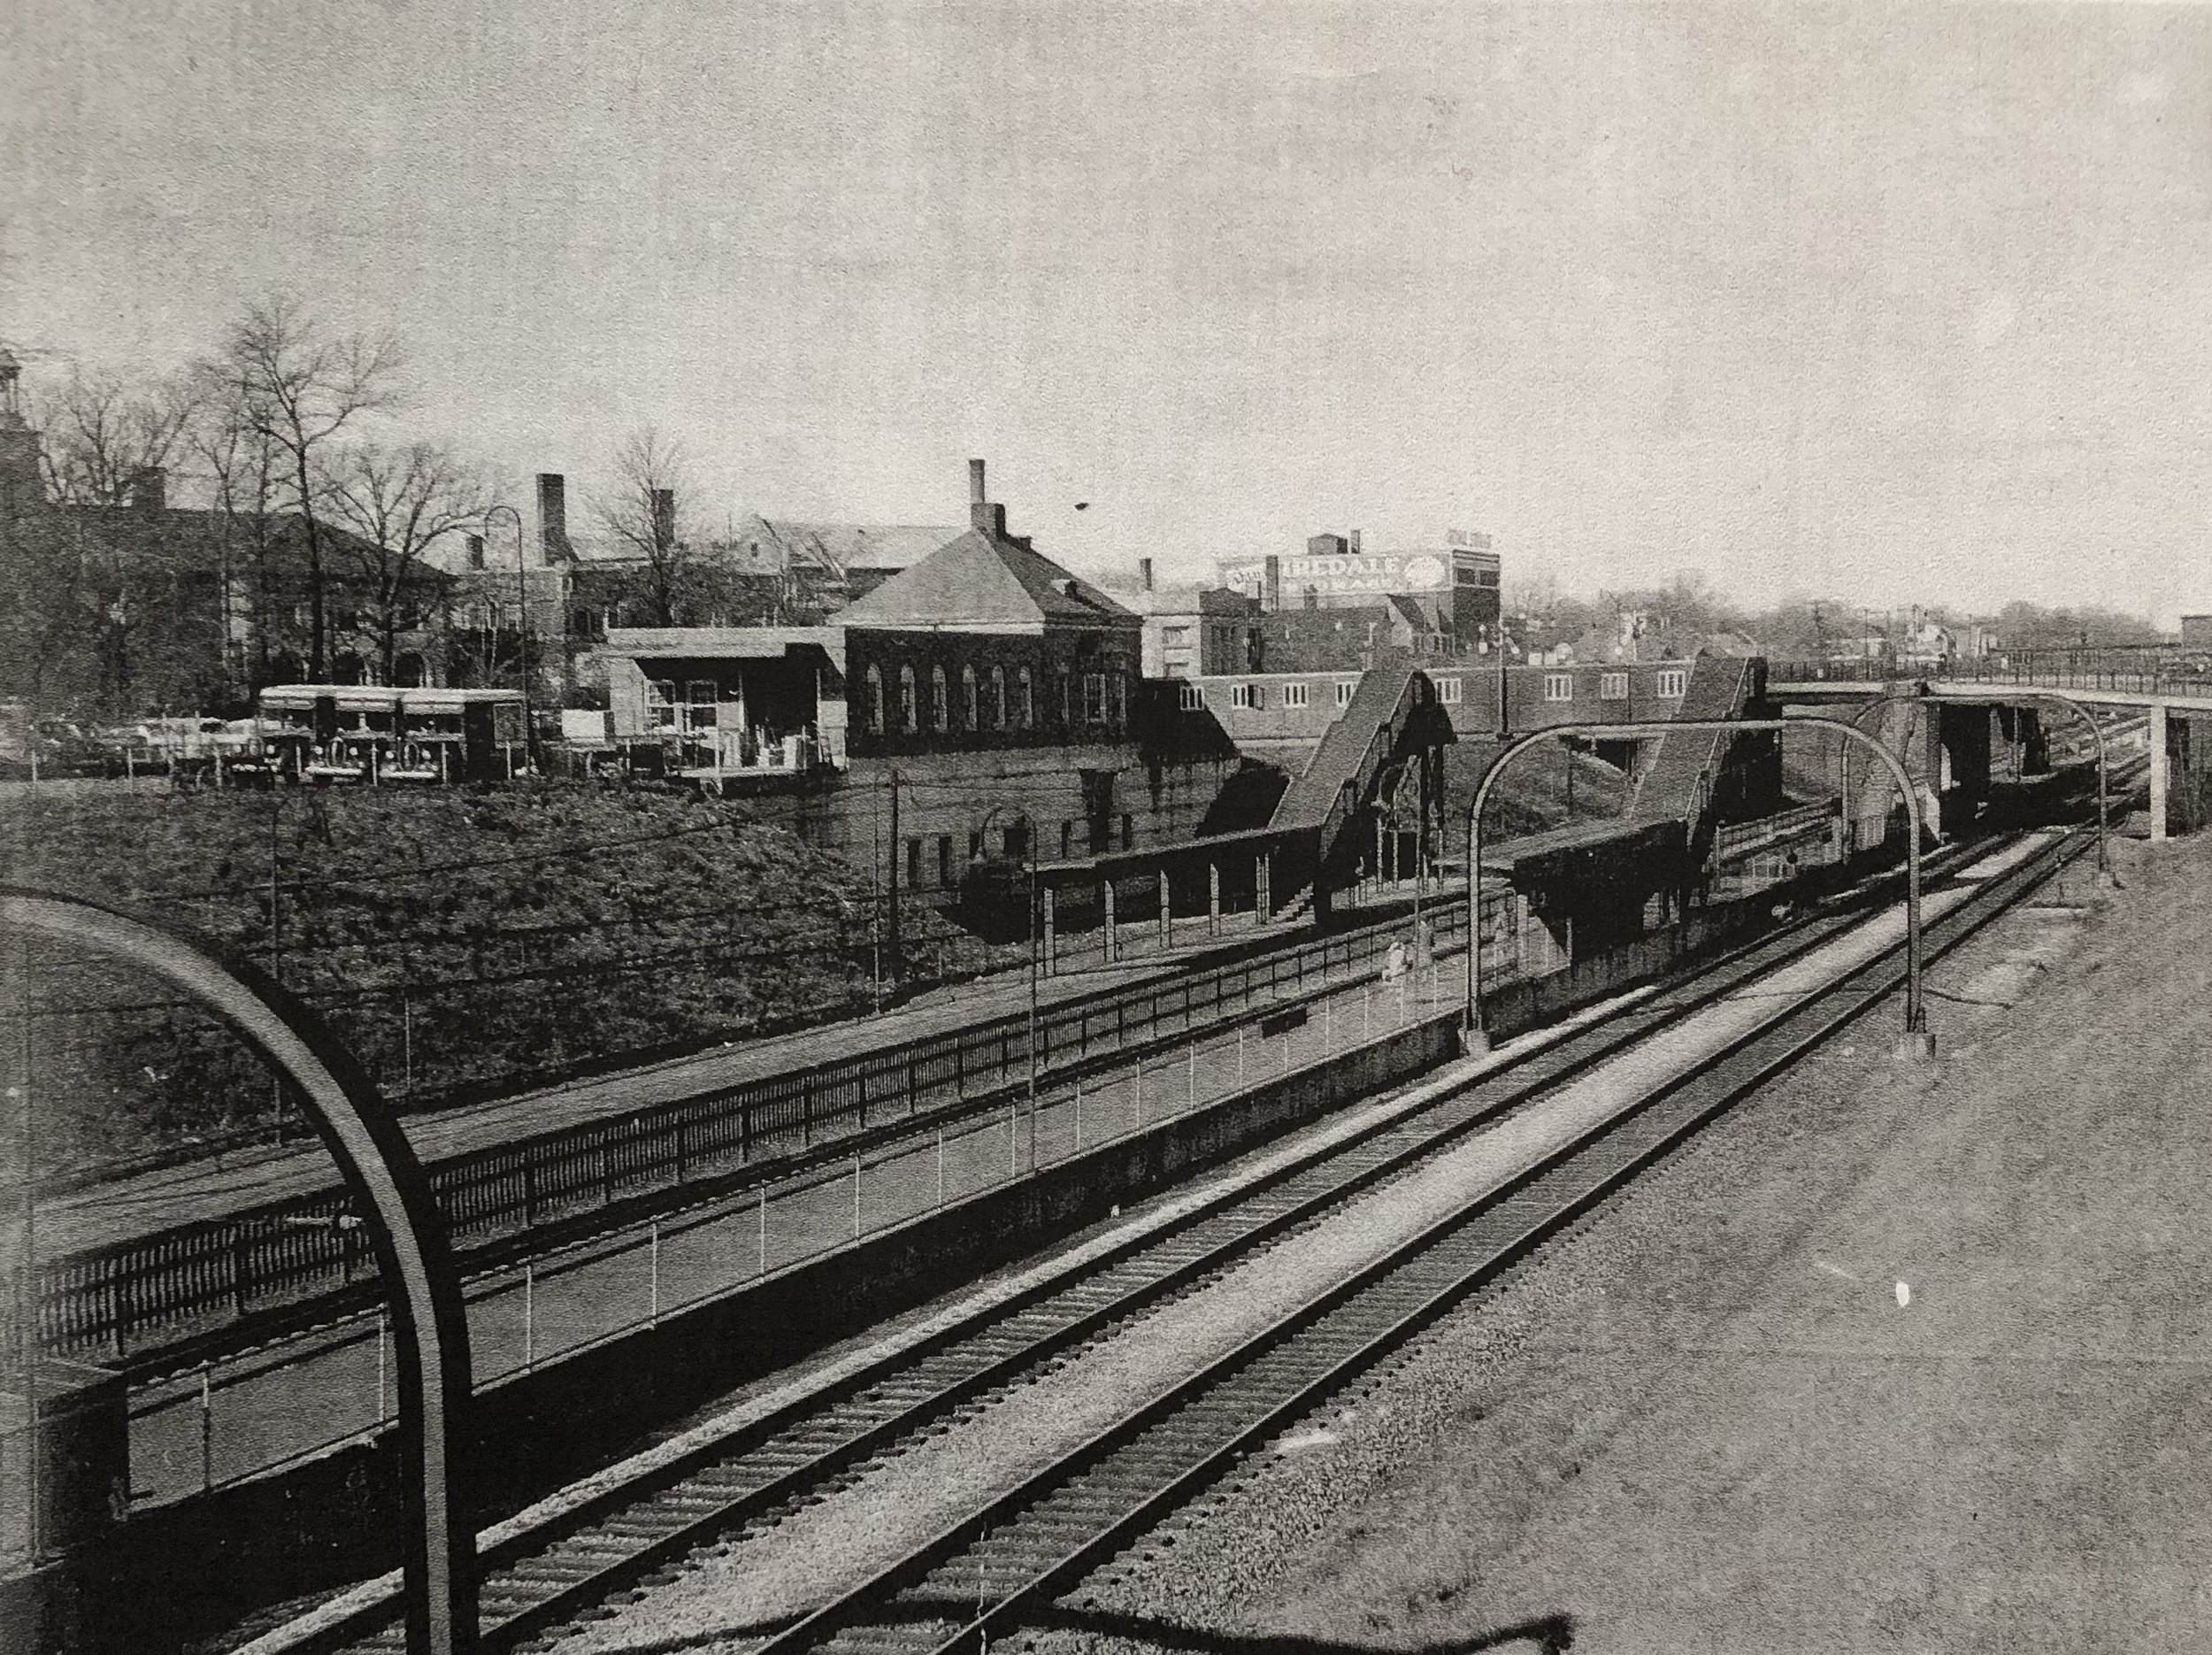 1943 - The lowering of Winnetka's railway tracks project finishes -